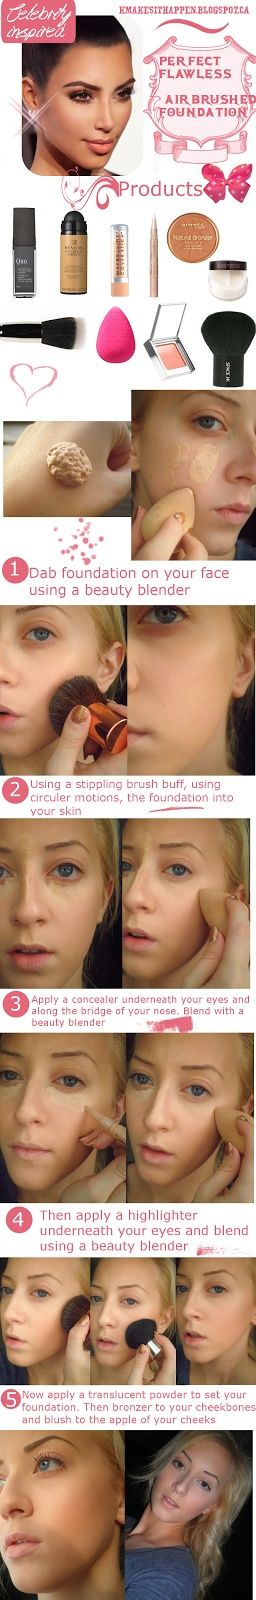 15 Makeup Tips You Must Love